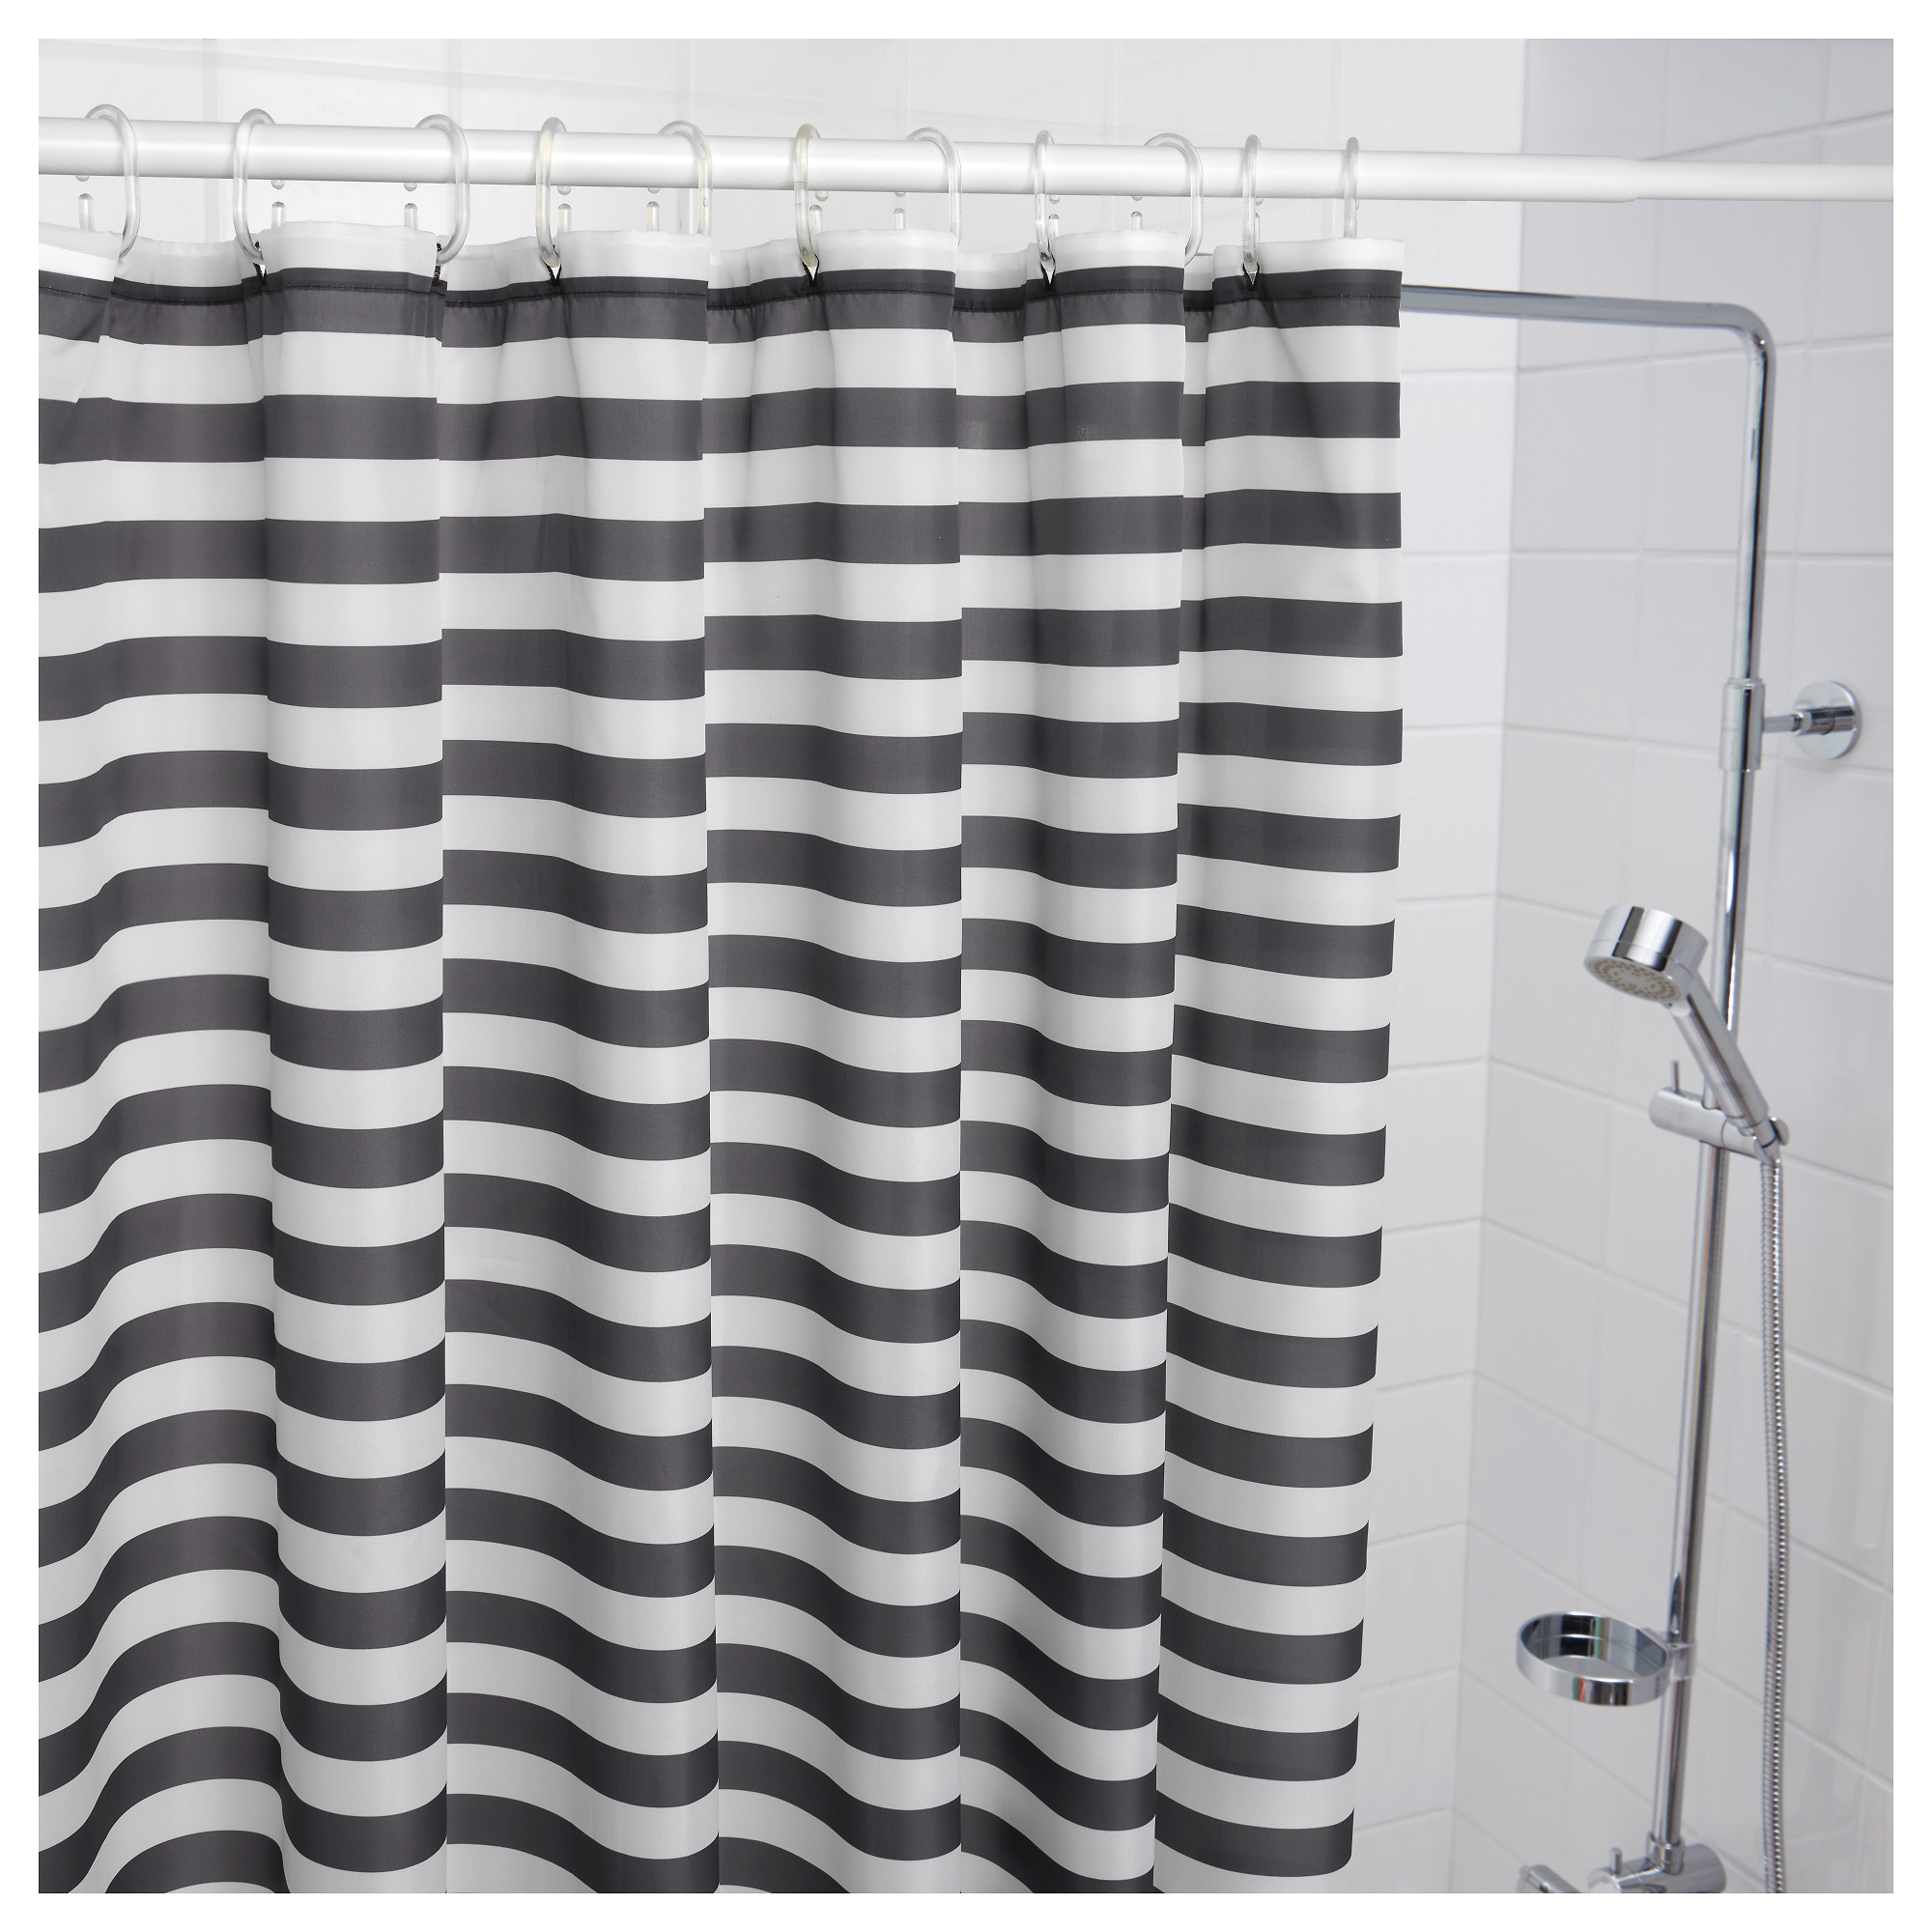 VADSJN Shower Curtain